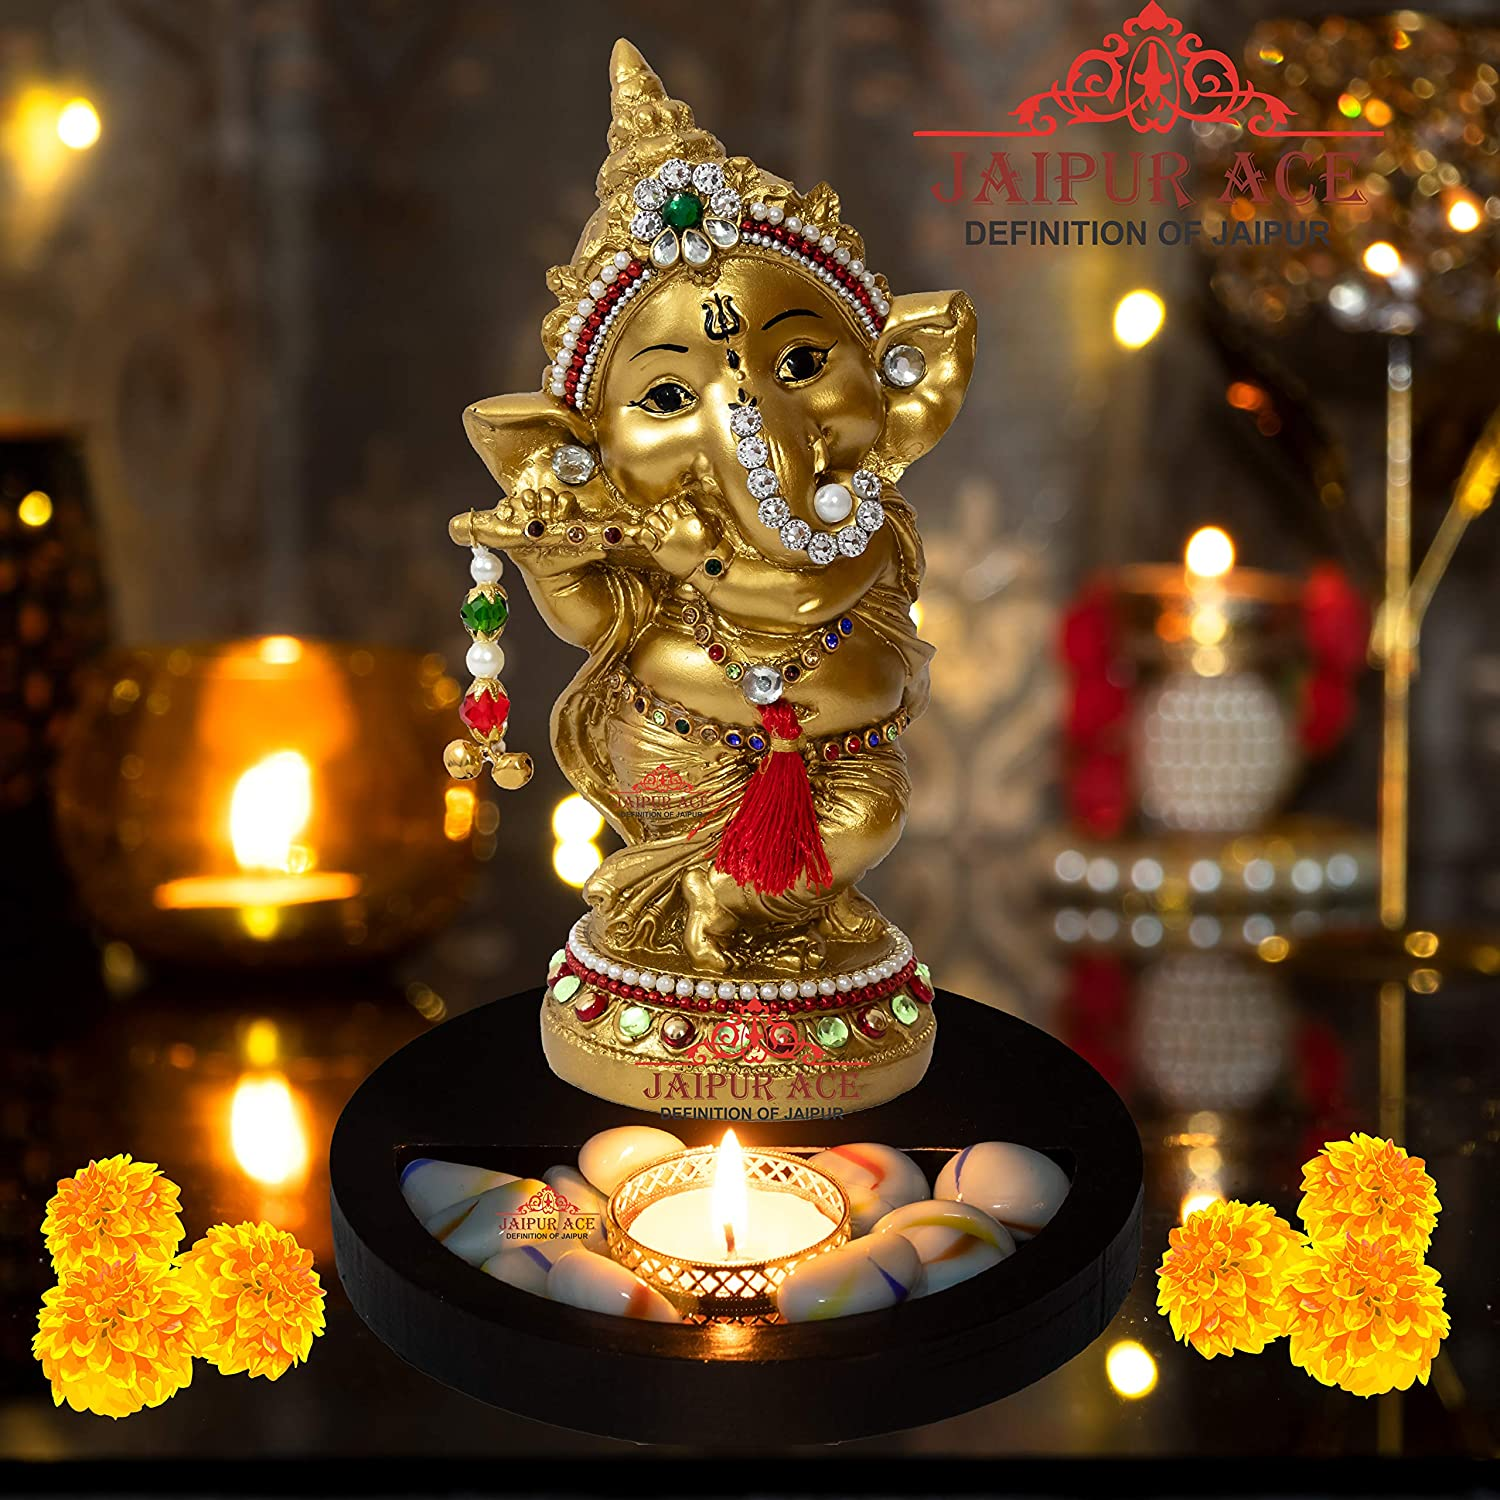 Buy Jaipur Ace Idol For Home Decor Best Diwali Gift Items Under 500 Ganesha On Tealight Tray Online At Low Prices In India Amazon In